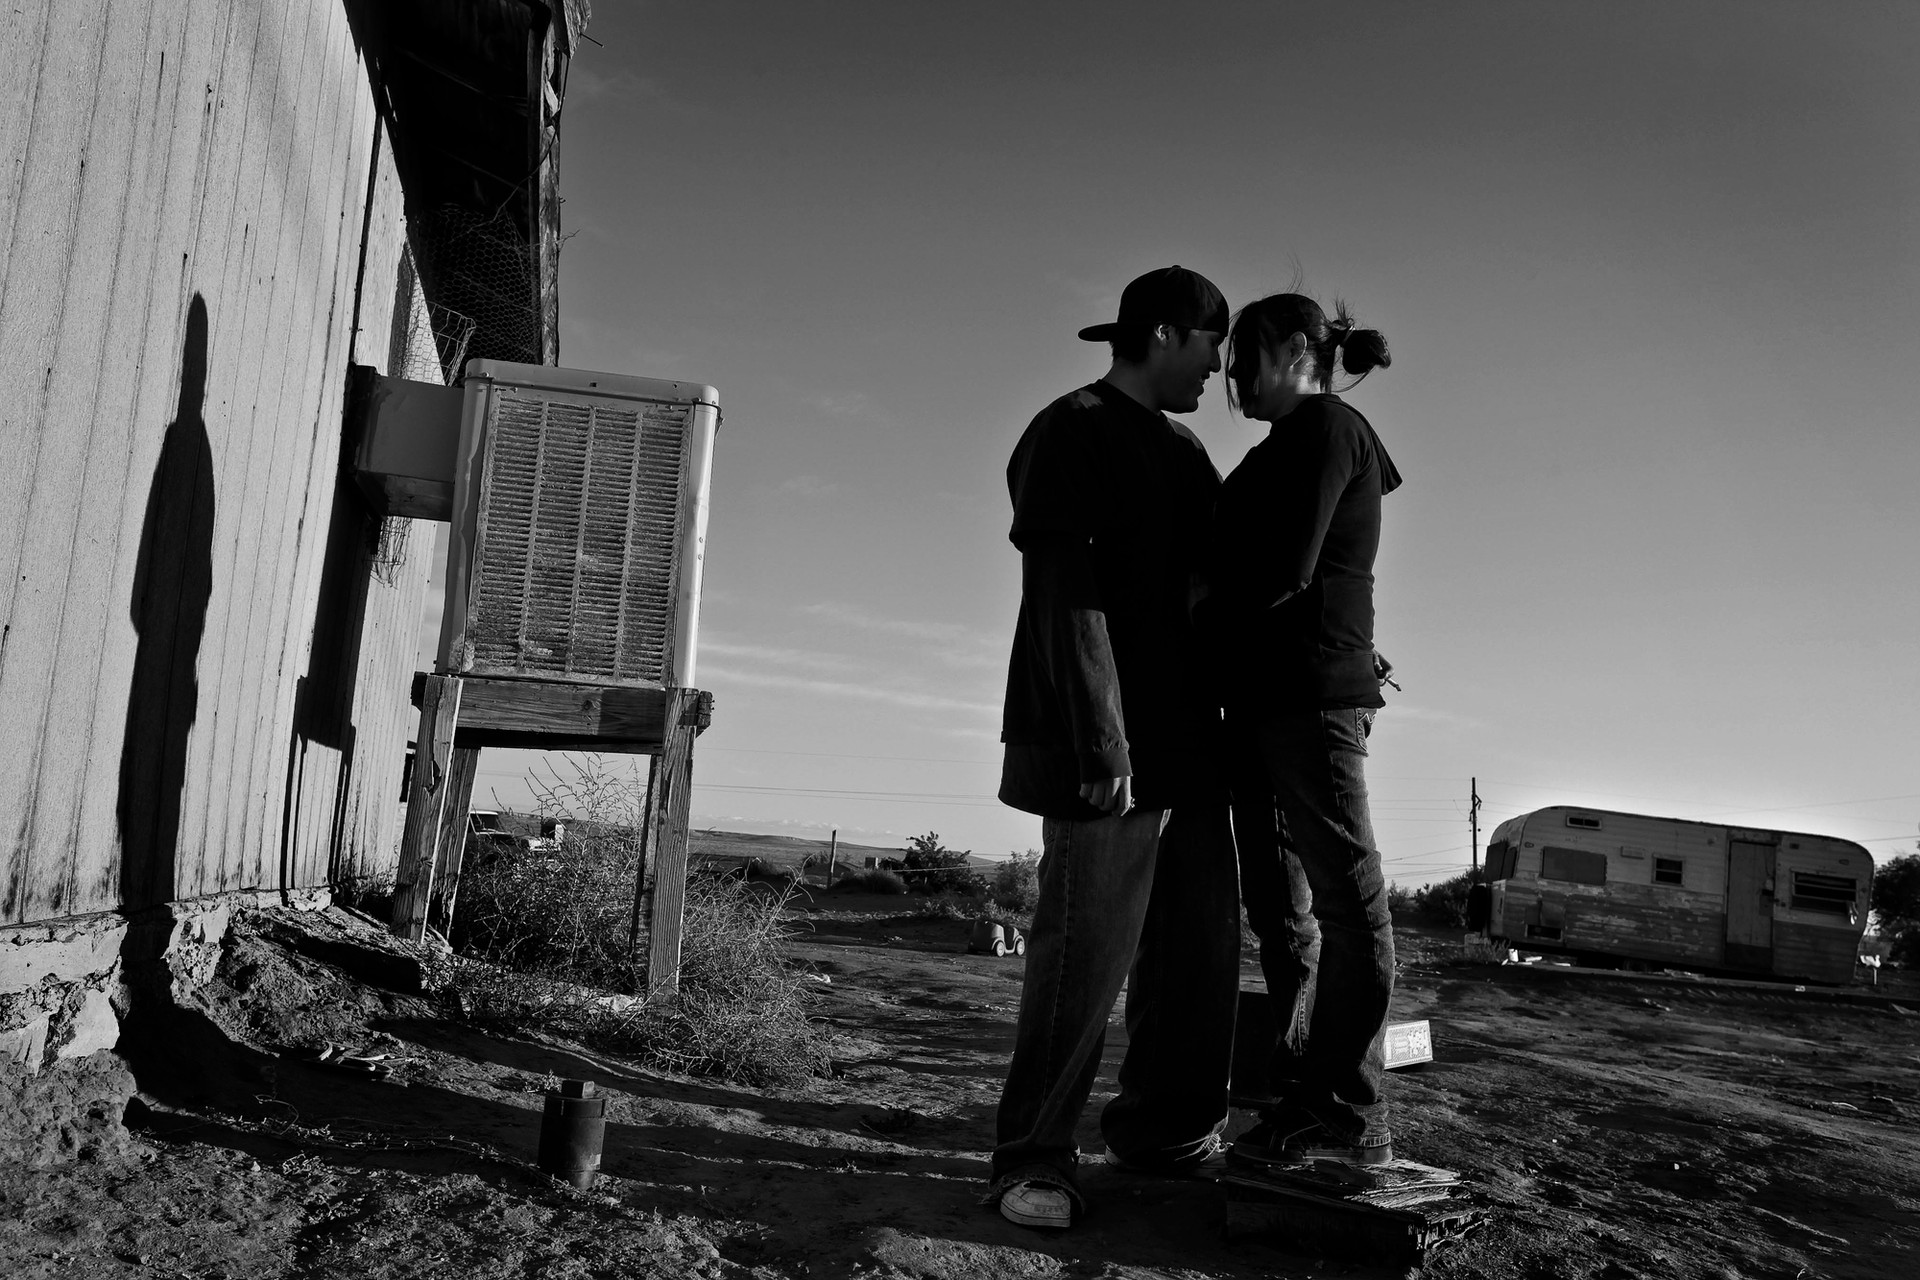 Michael and Sarah share a moment alone during a family gathering on the reservation.